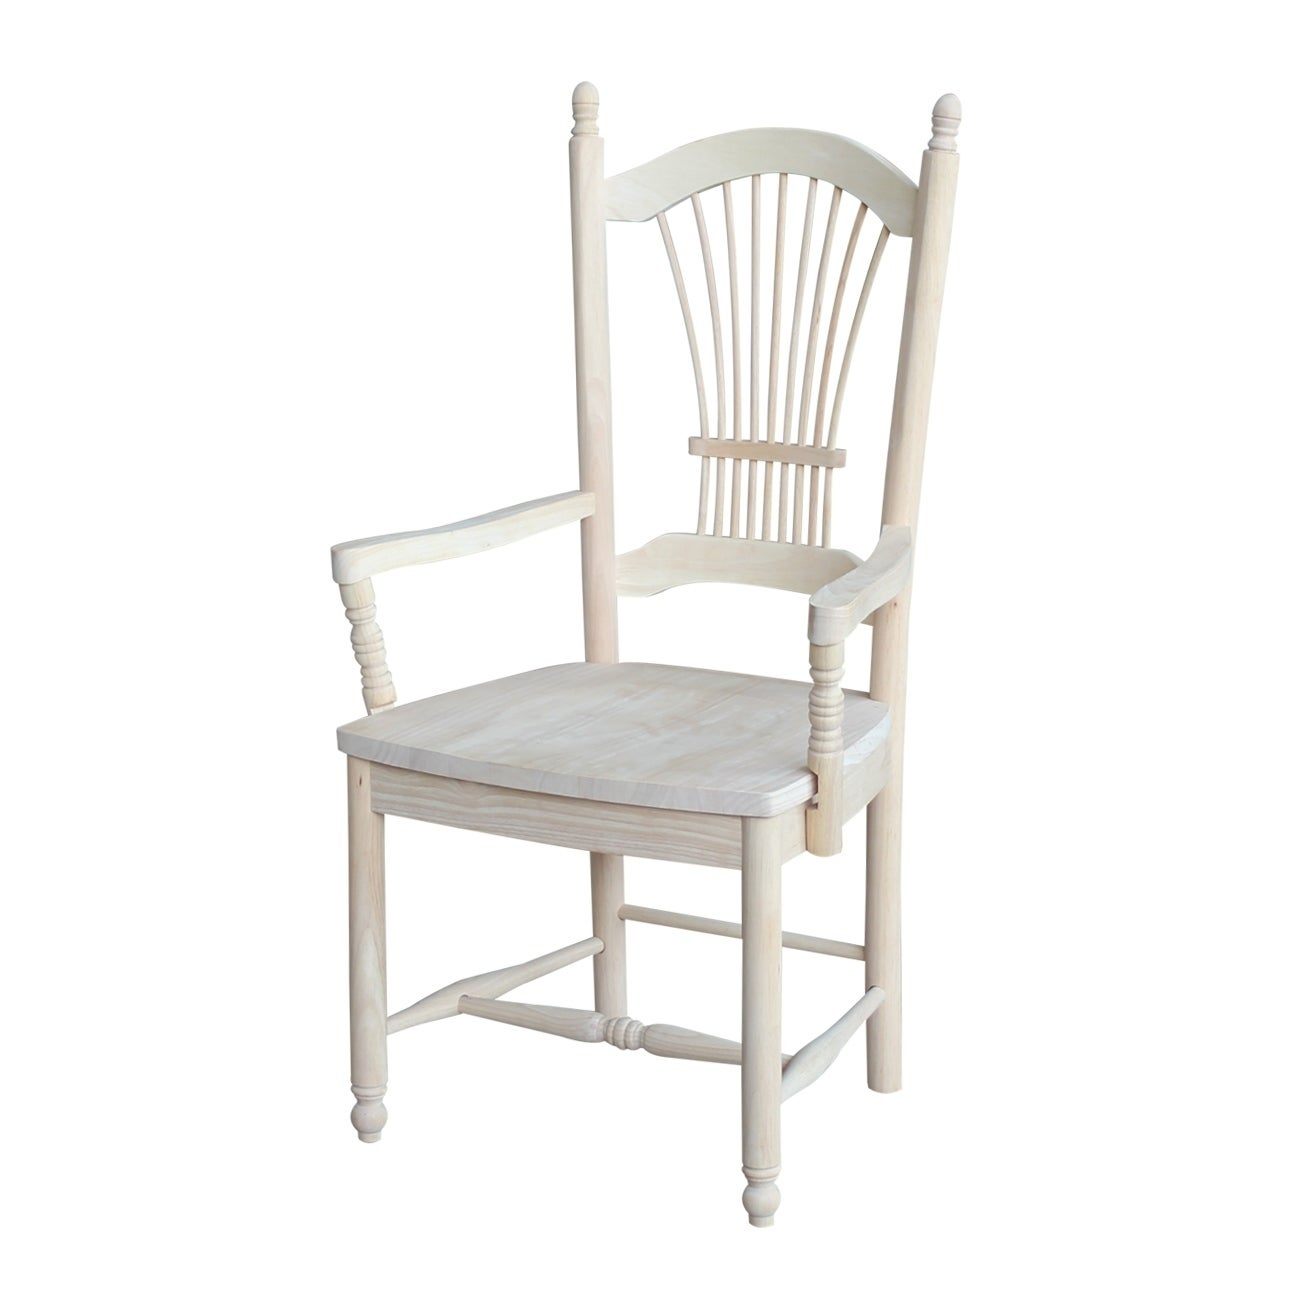 Shop International Concepts Sheafback Chair With Arms Free